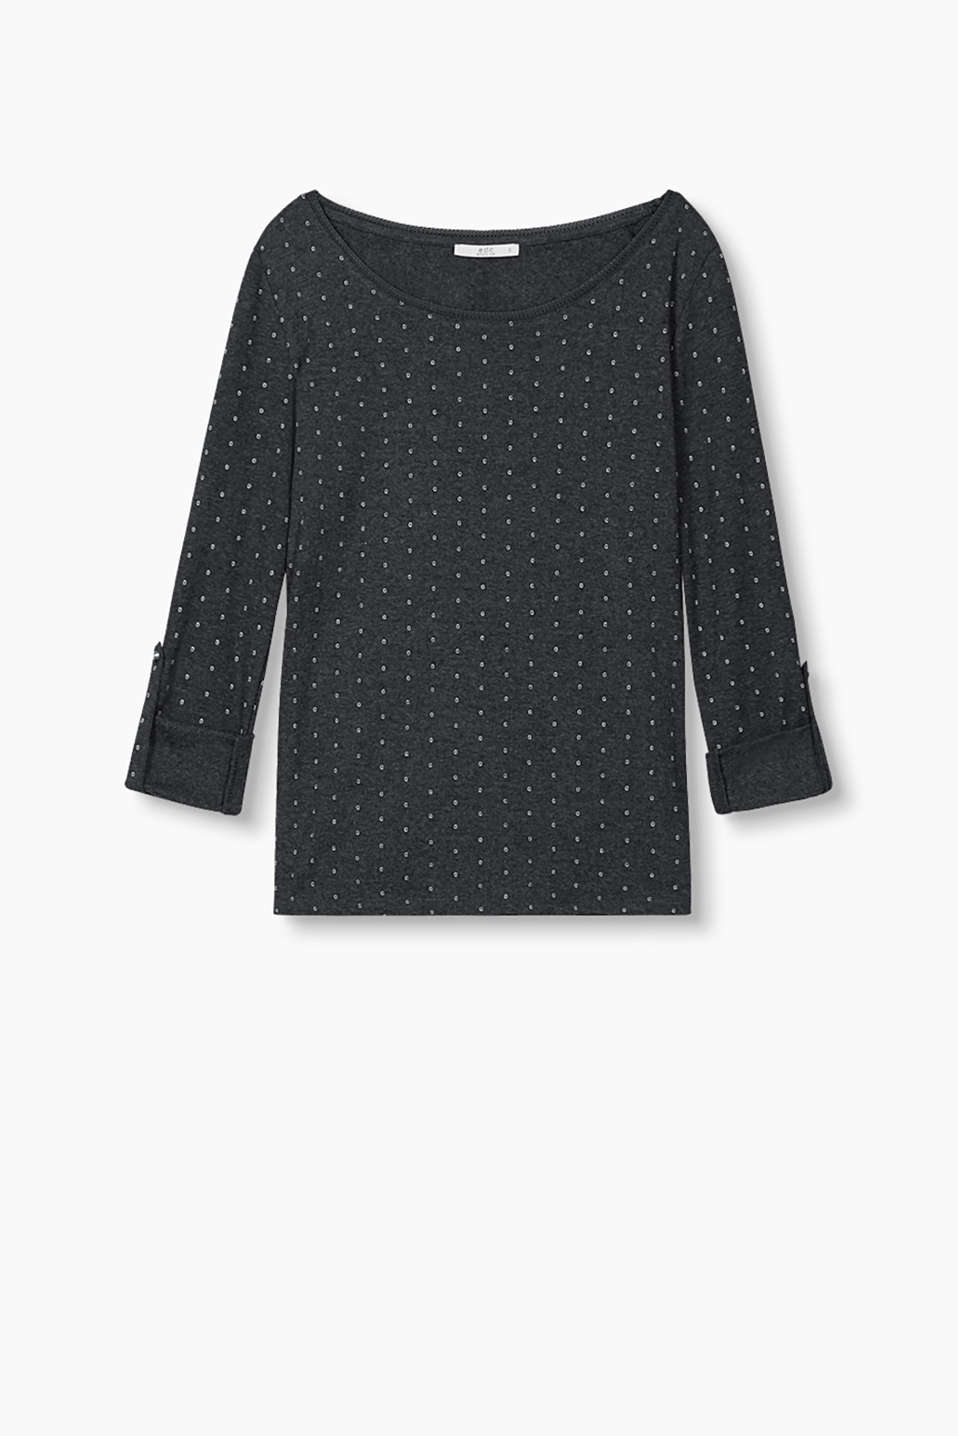 Long sleeve top with a charming print, turn-up sleeves and a border along the neckline